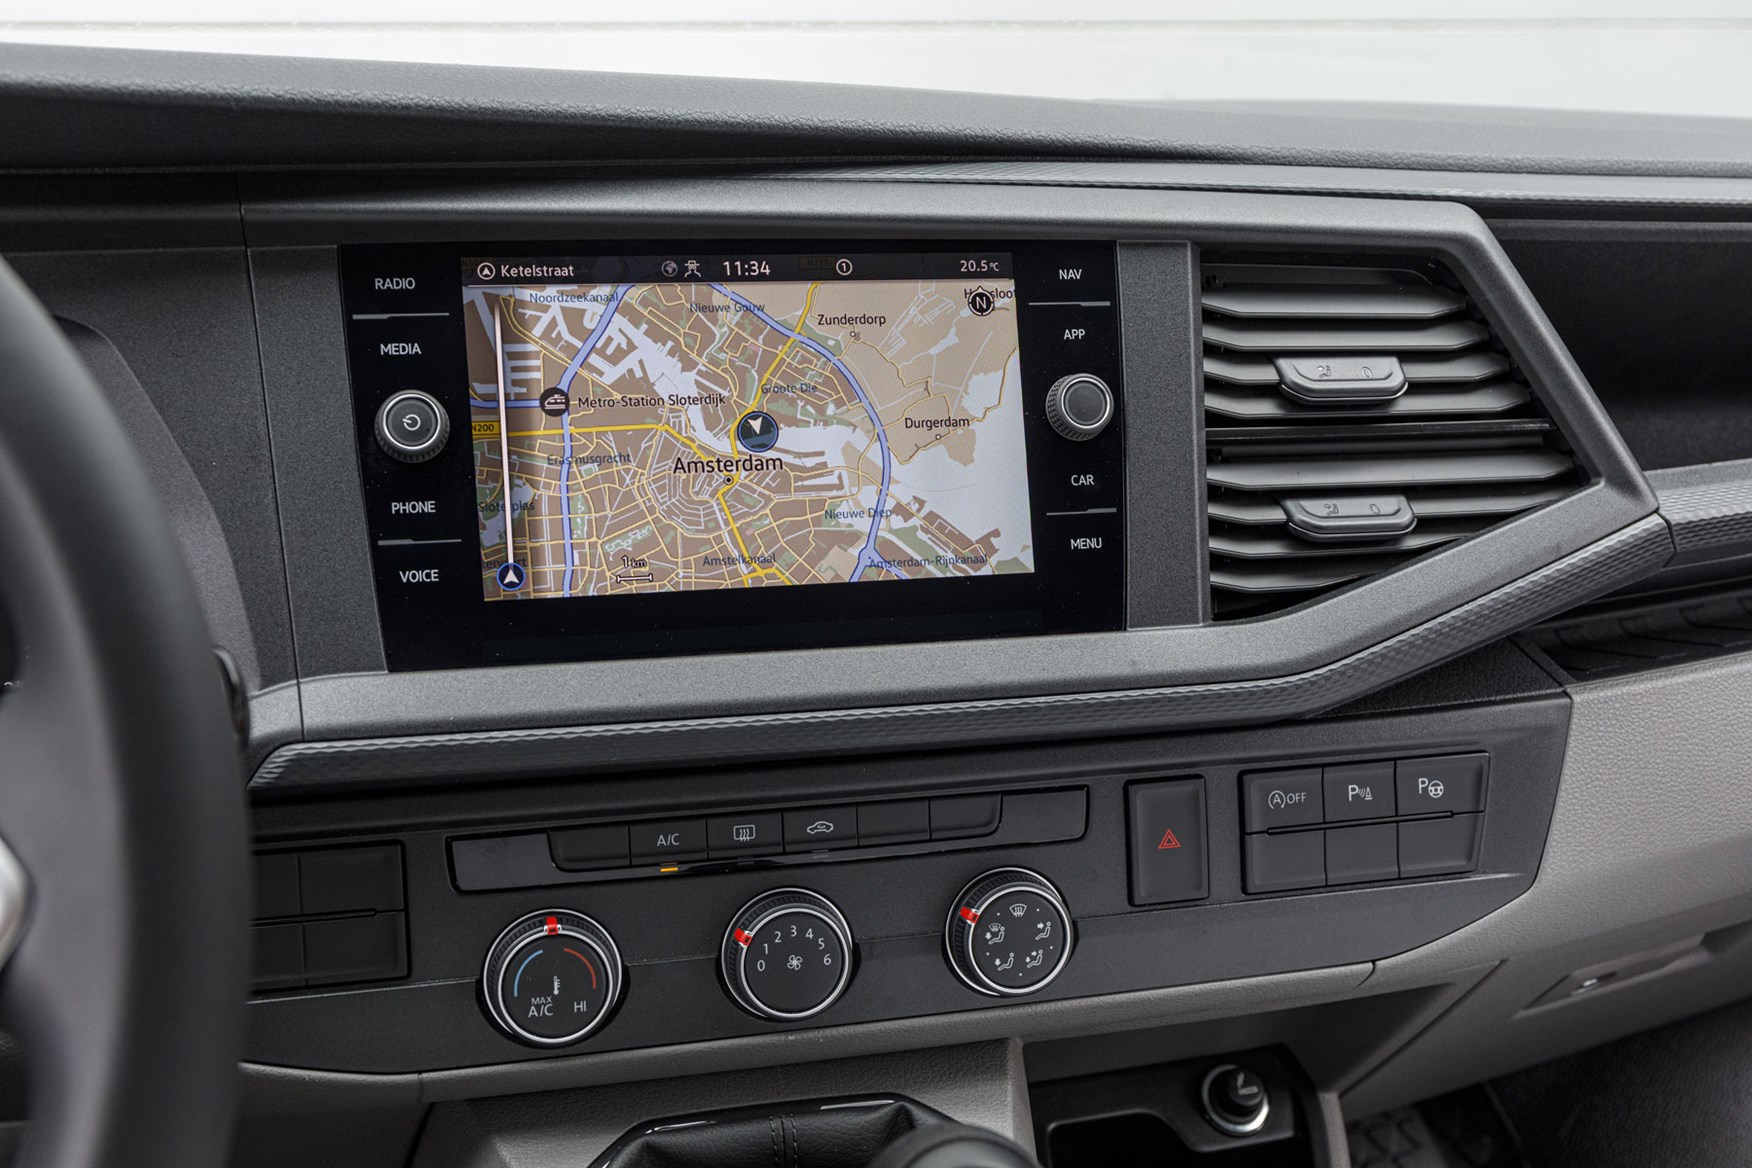 VW Transporter review - T6.1 2019 facelift, MIB3 infotainment system with 9.2-inch touchscreen